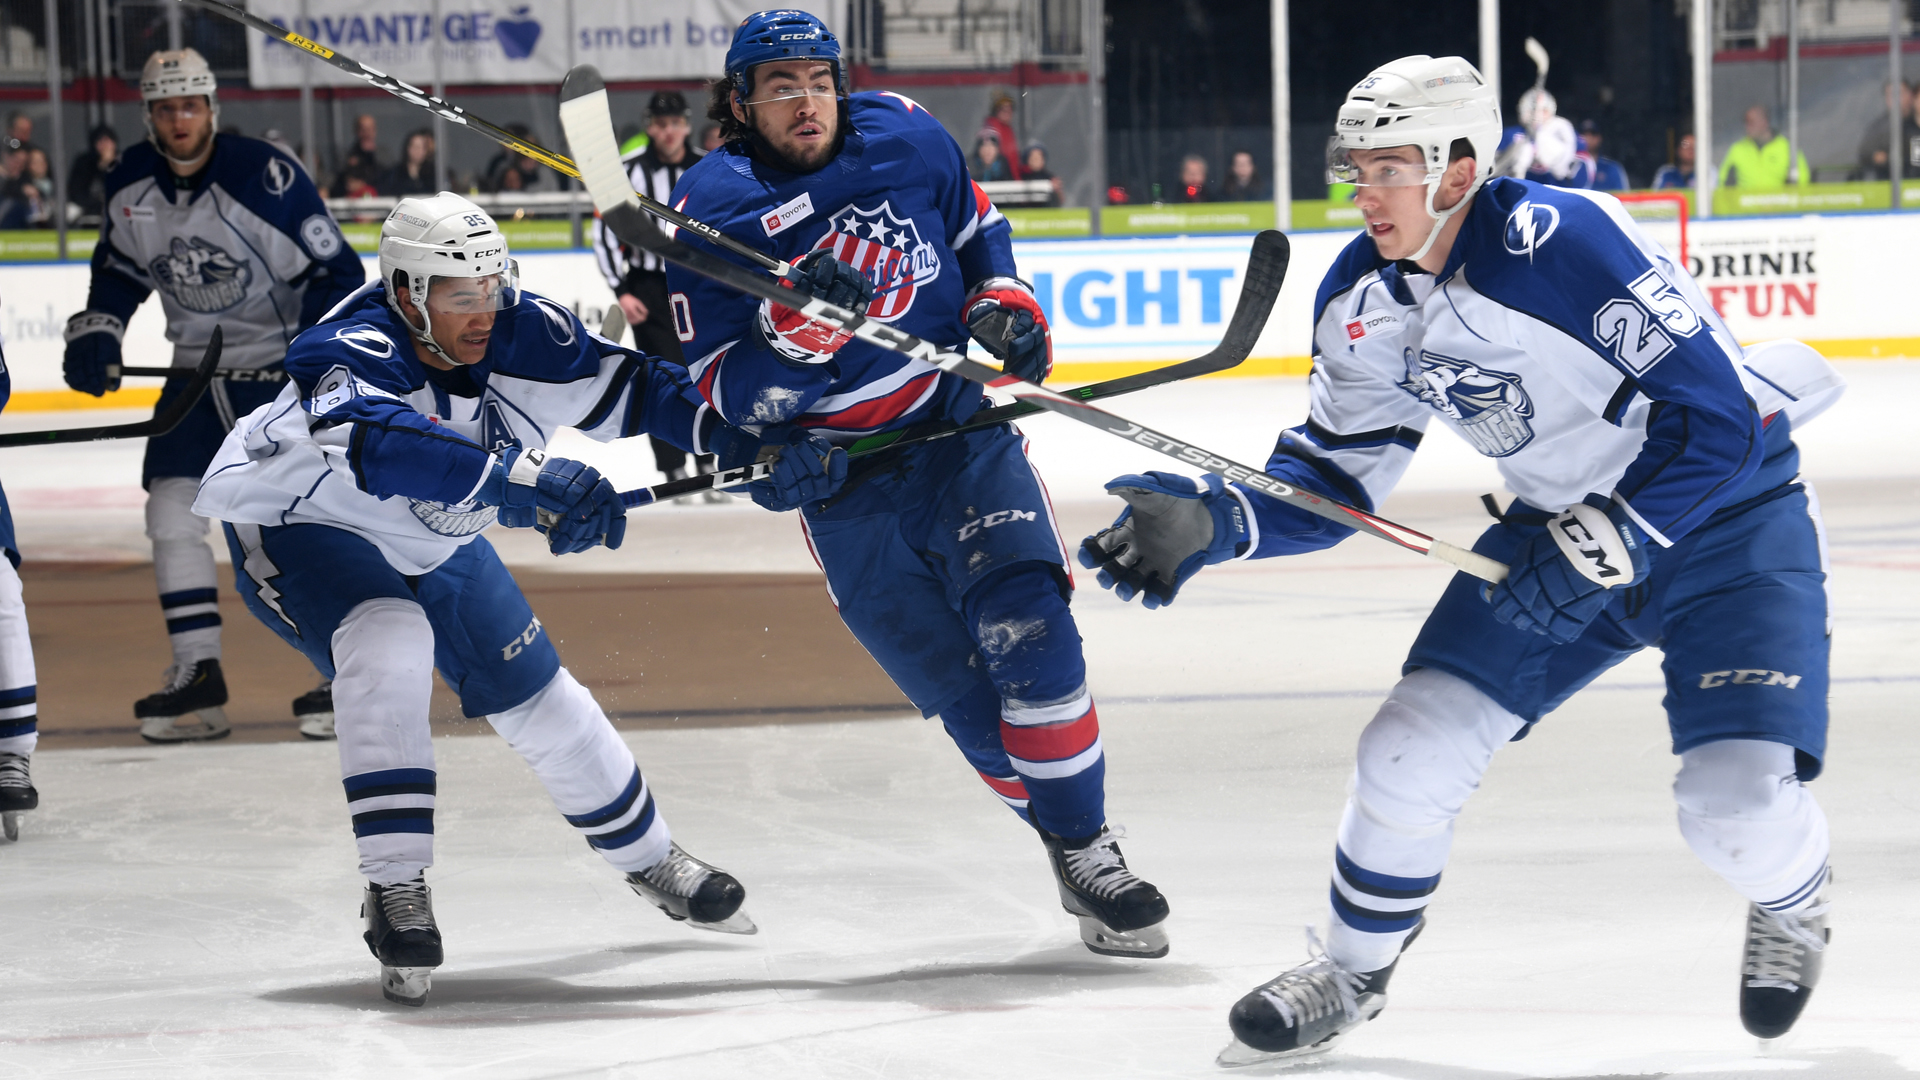 Amerks win streak snapped with 5-2 home loss to Crunch